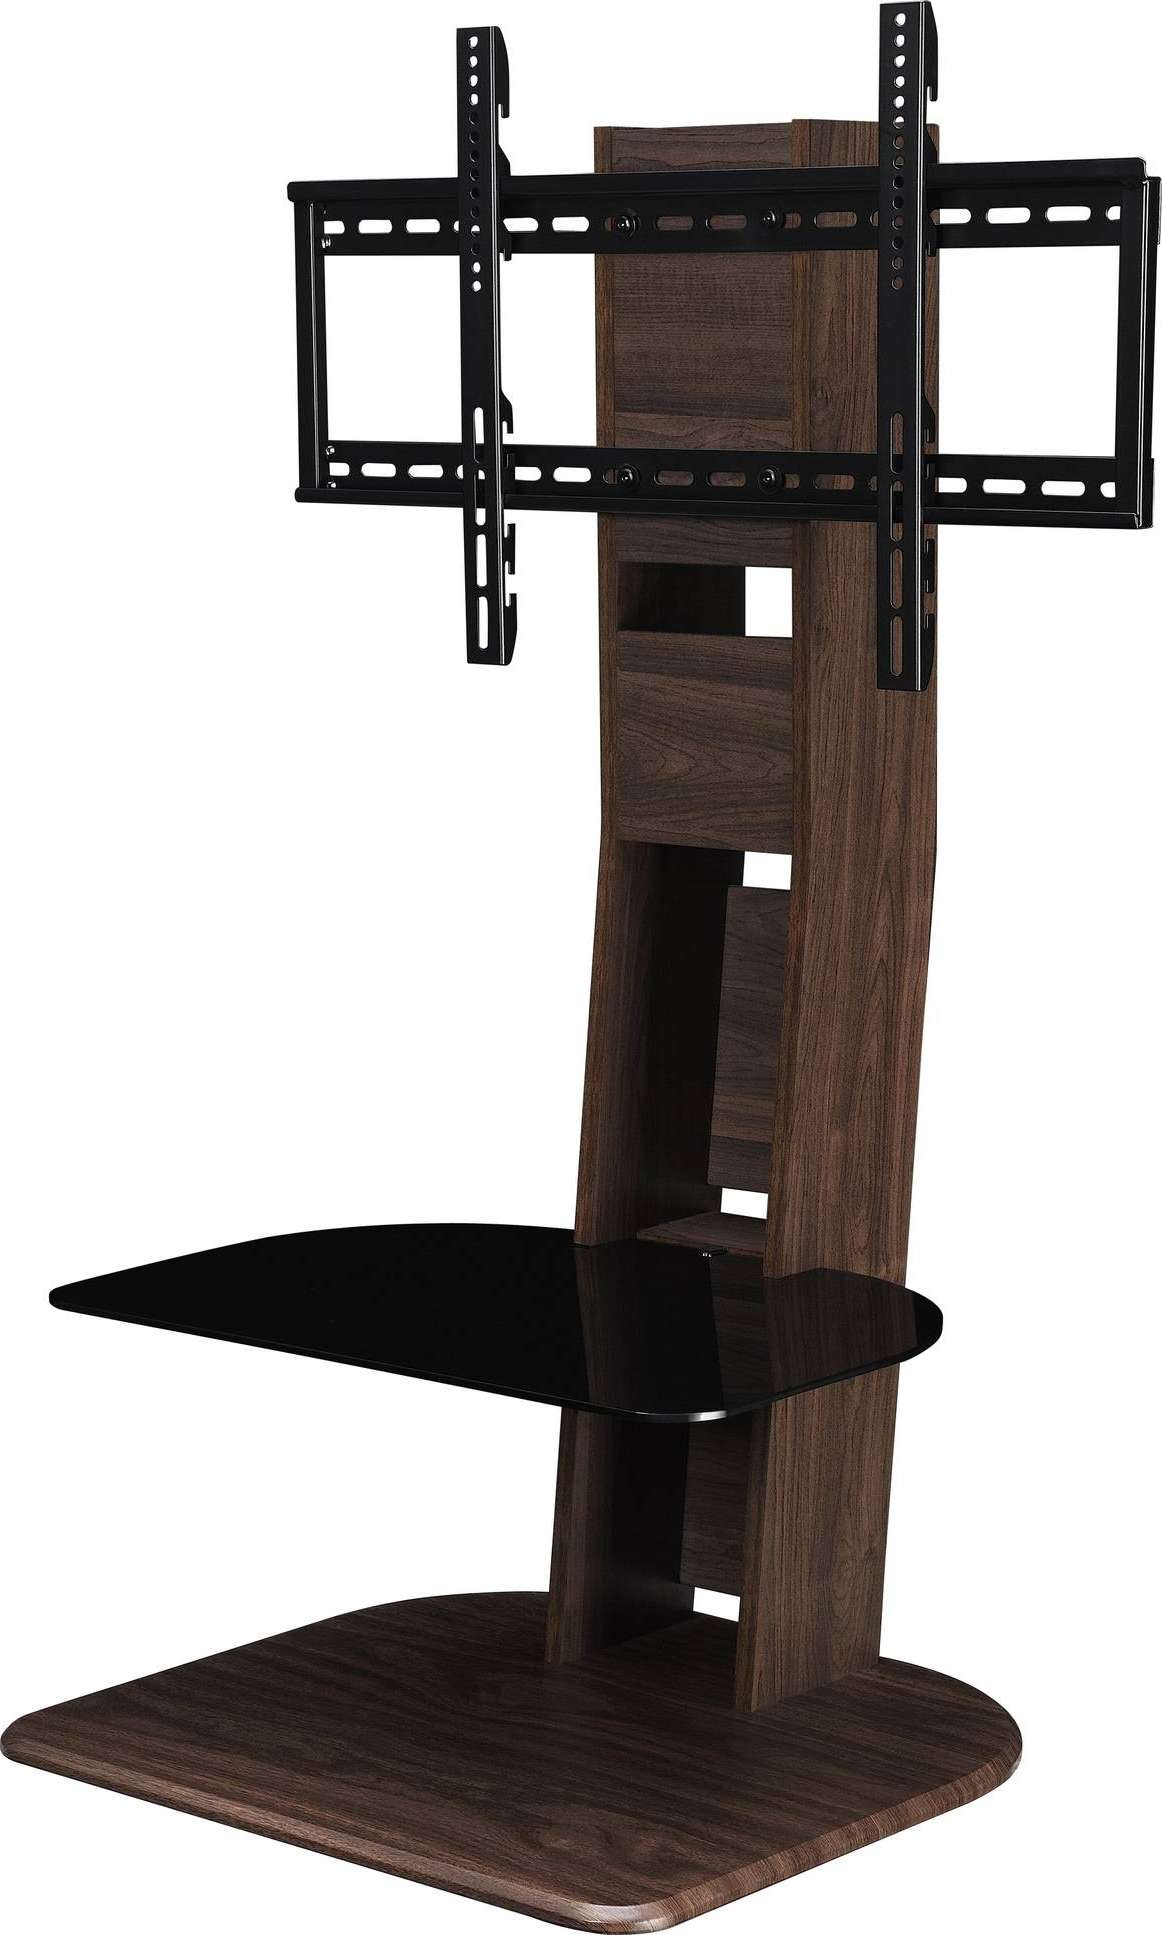 Media Stands For Flat Screen Tvs Modern Wood Tv Stand With Mount In Wood And Glass Tv Stands For Flat Screens (View 8 of 20)